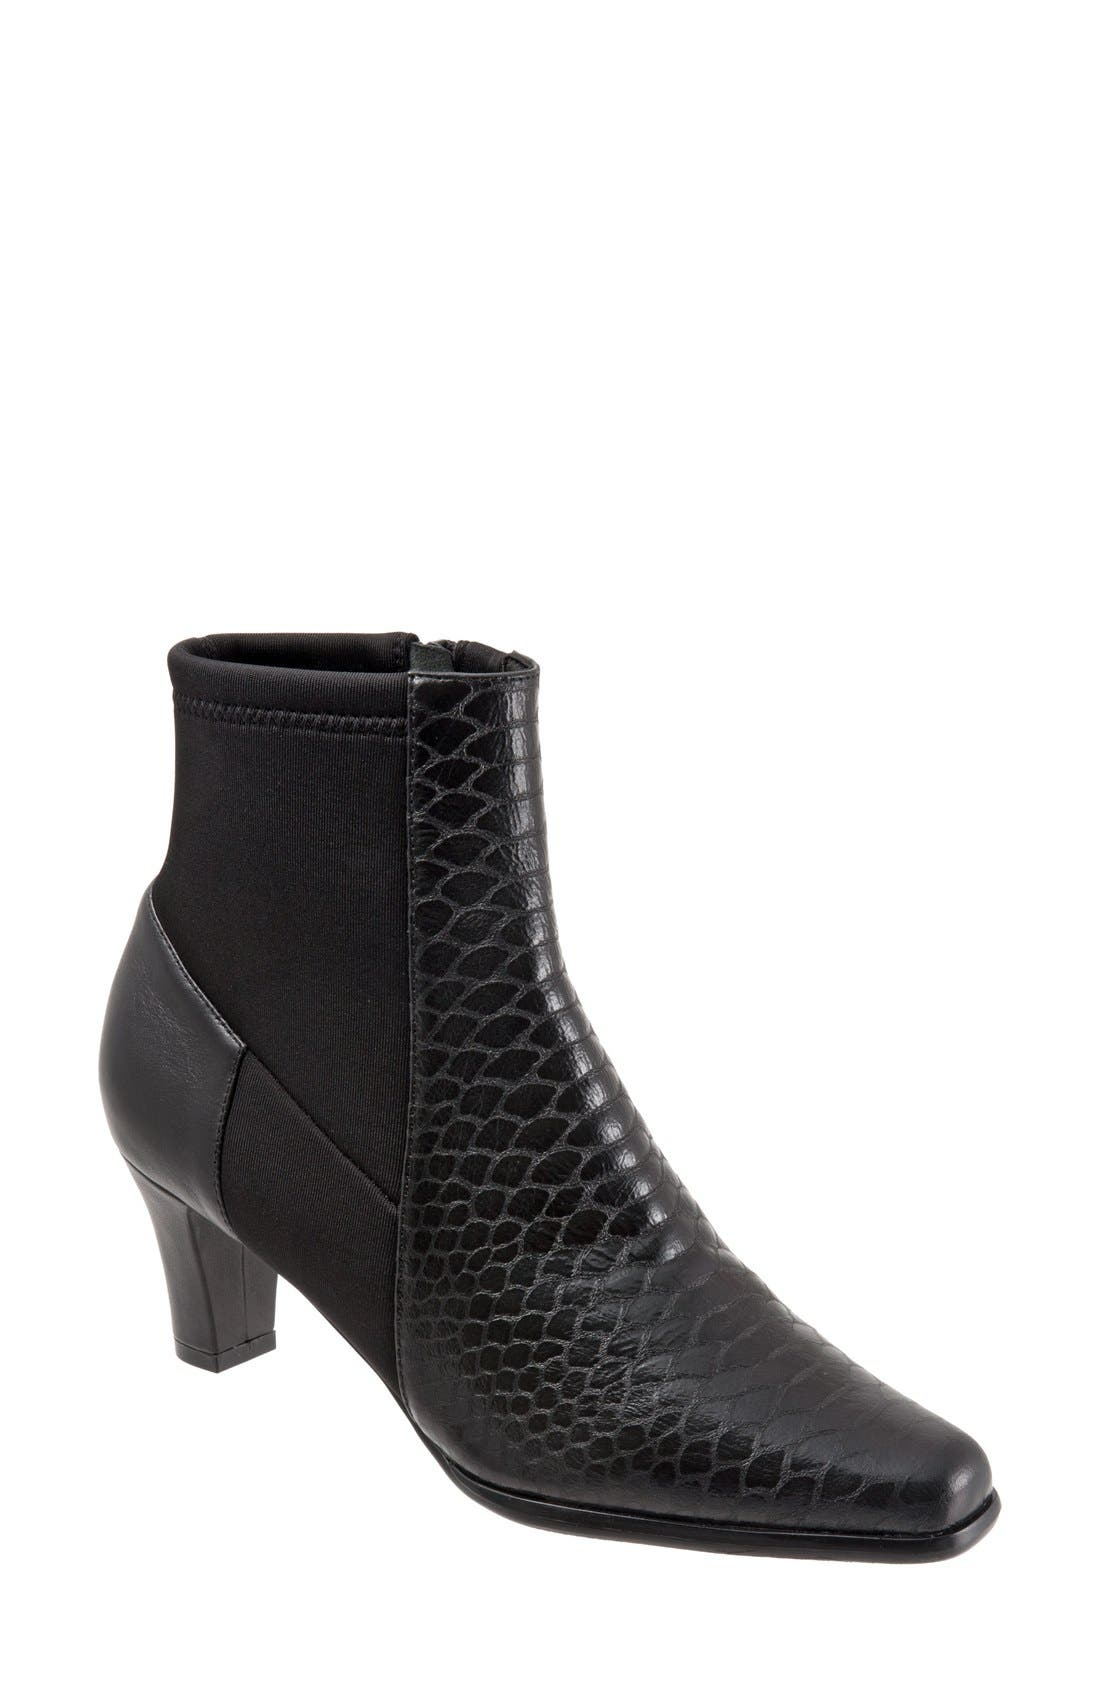 Main Image - Trotters 'Janet' Boot